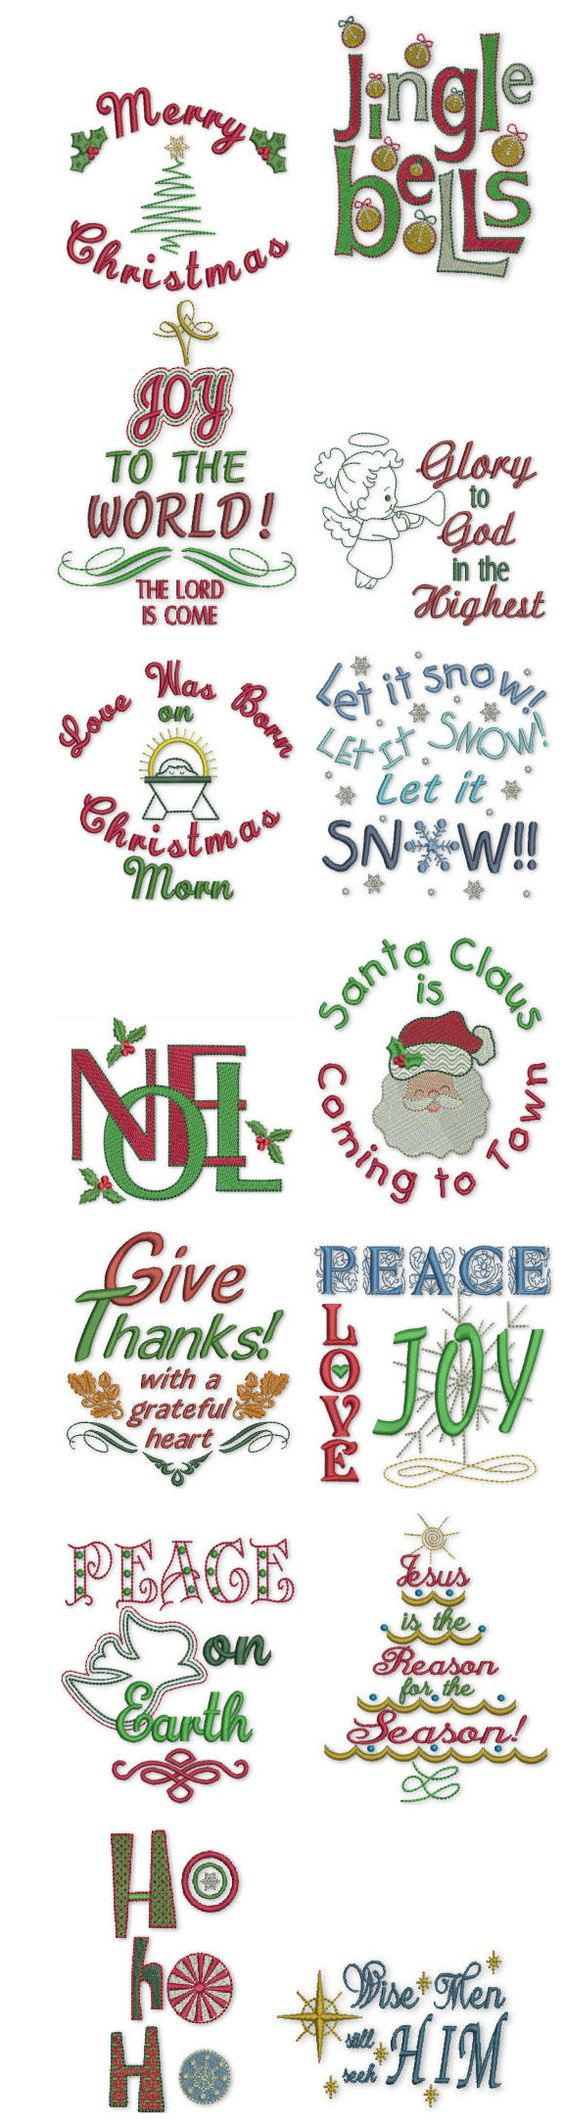 Embroidery | Free Machine Embroidery Designs | Holiday Expressions  @Matt Nickles Nickles Valk Chuah red stitch Johnson by JuJu